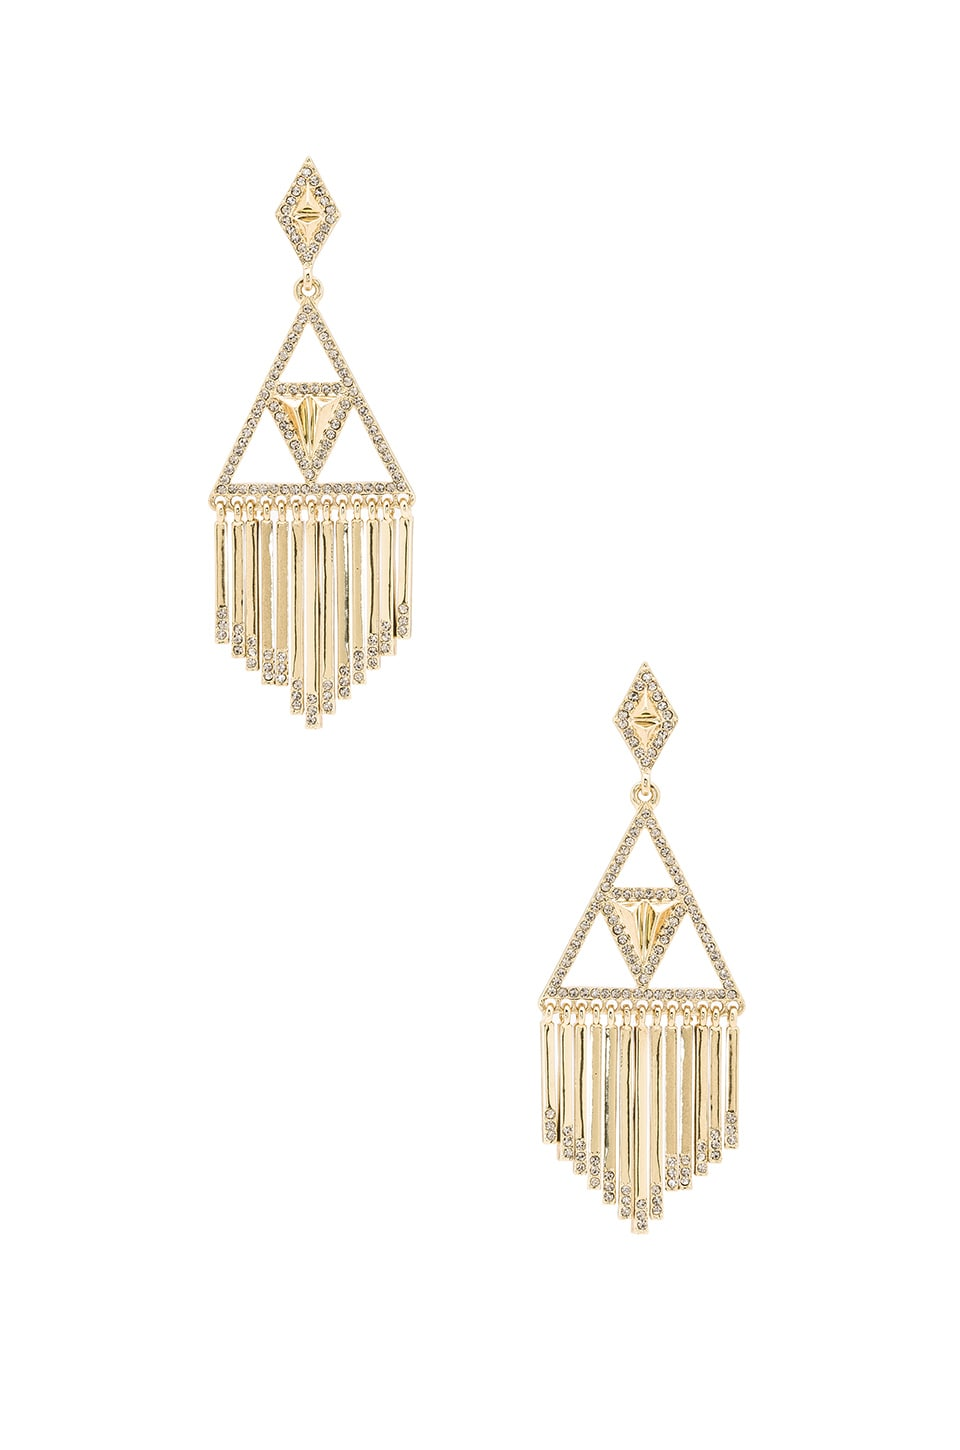 House of Harlow 1960 Golden Hour Fringe Earring in Gold